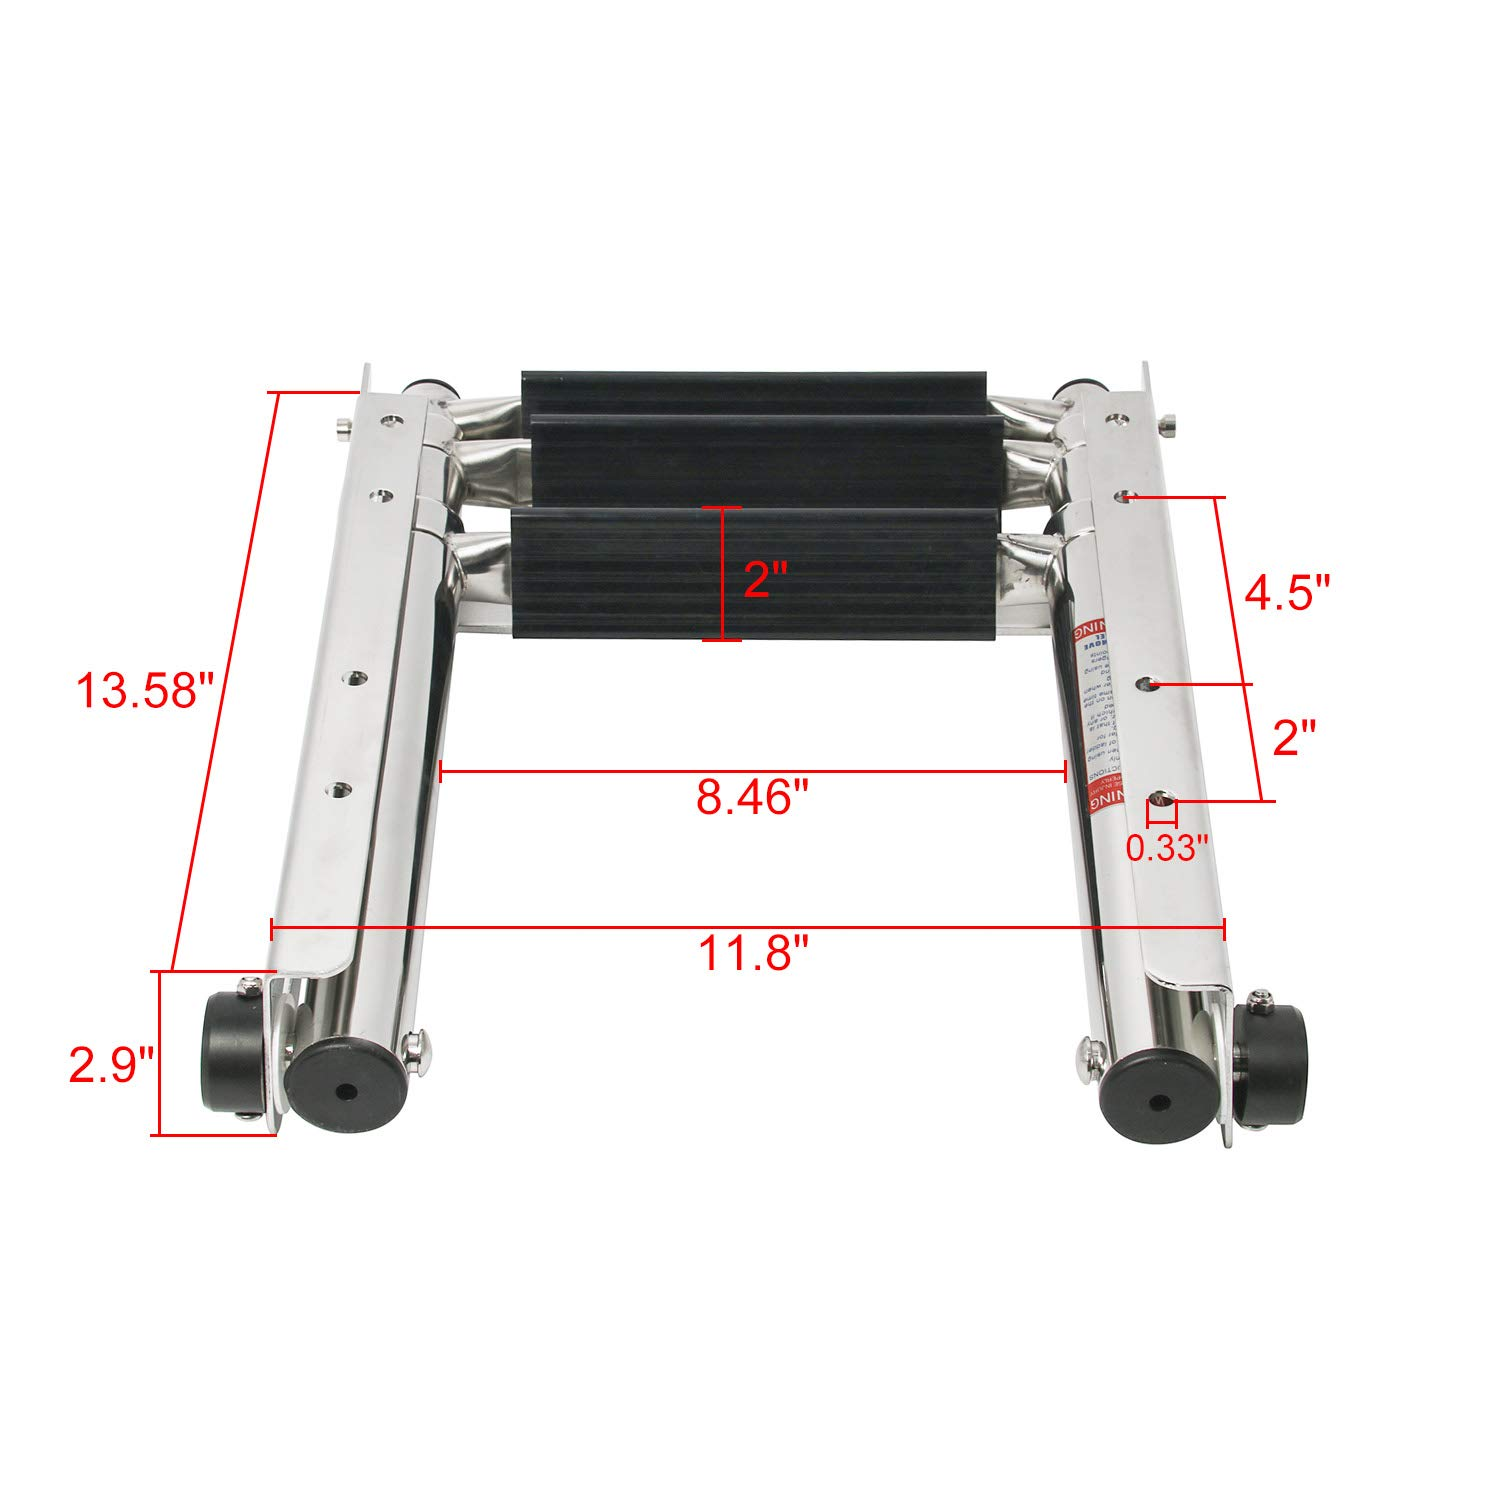 NovelBee 3 Step Undermount Sliding Boat Ladder Stainless Steel Telescoping Swim Boarding Ladder with Pop-N-Lock to Shrink The Ladder into The Slot